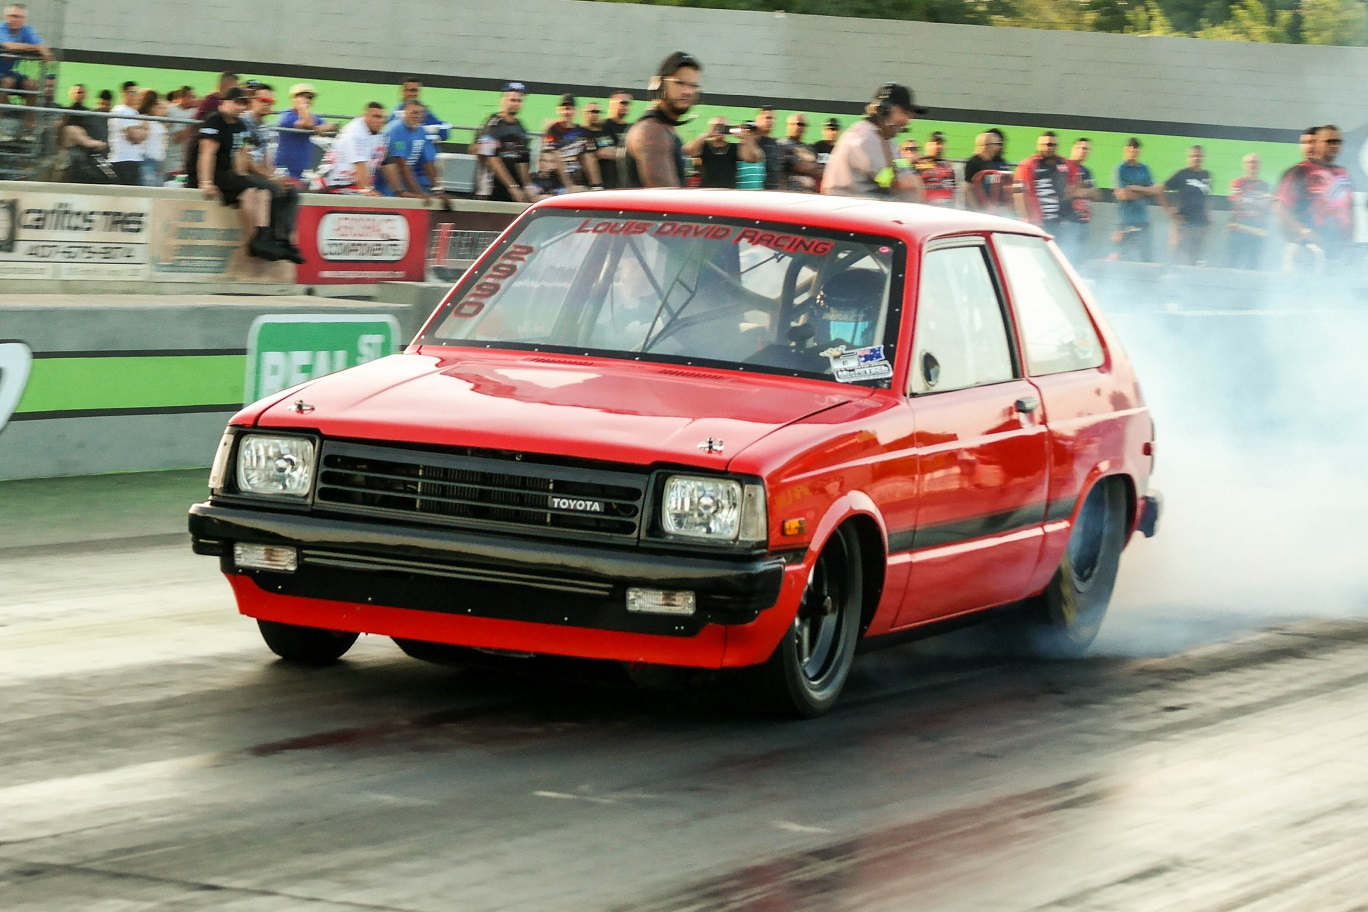 Top 10 Quickest Toyota Starlet - Page 2 of 2 - Drag Import News